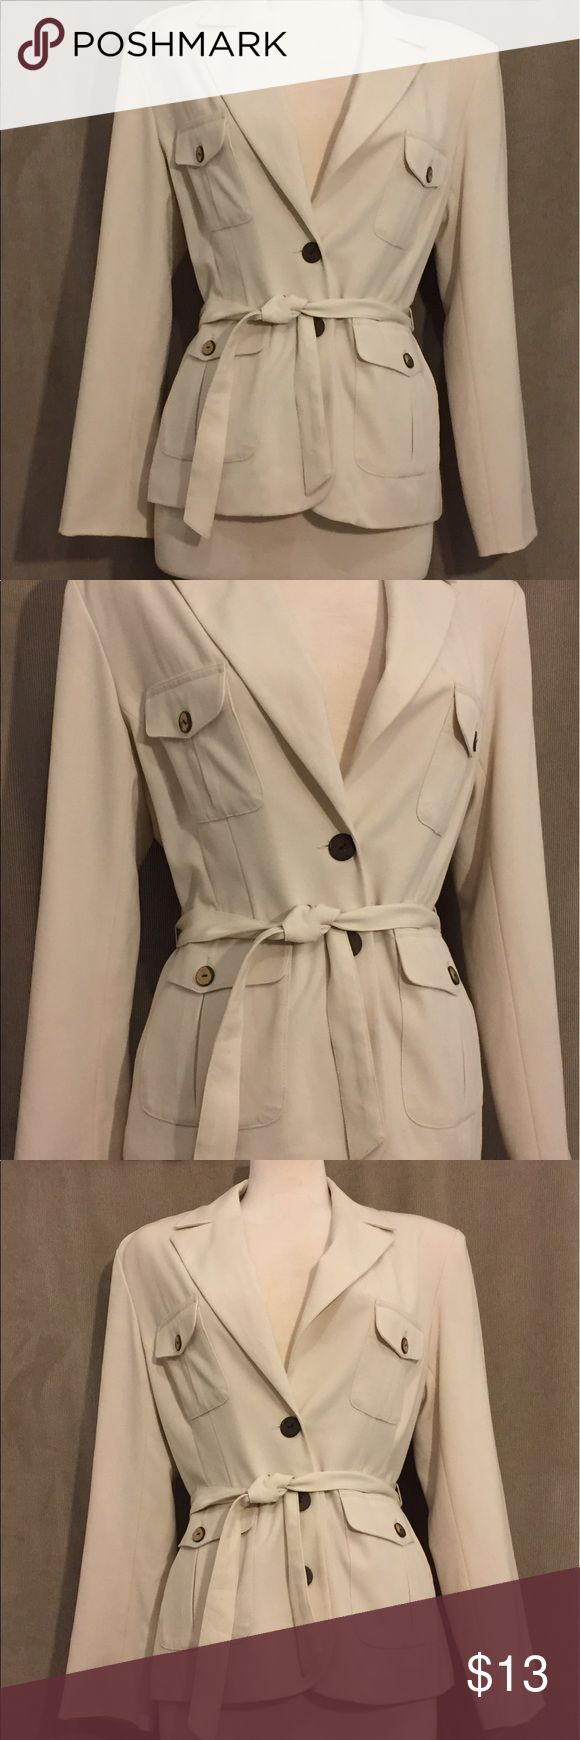 Safari style belted blazer Safari style belted blazer has a notched collar that is belted and features 4 working pockets with wood grain buttons. Christy Miller Jackets & Coats Blazers